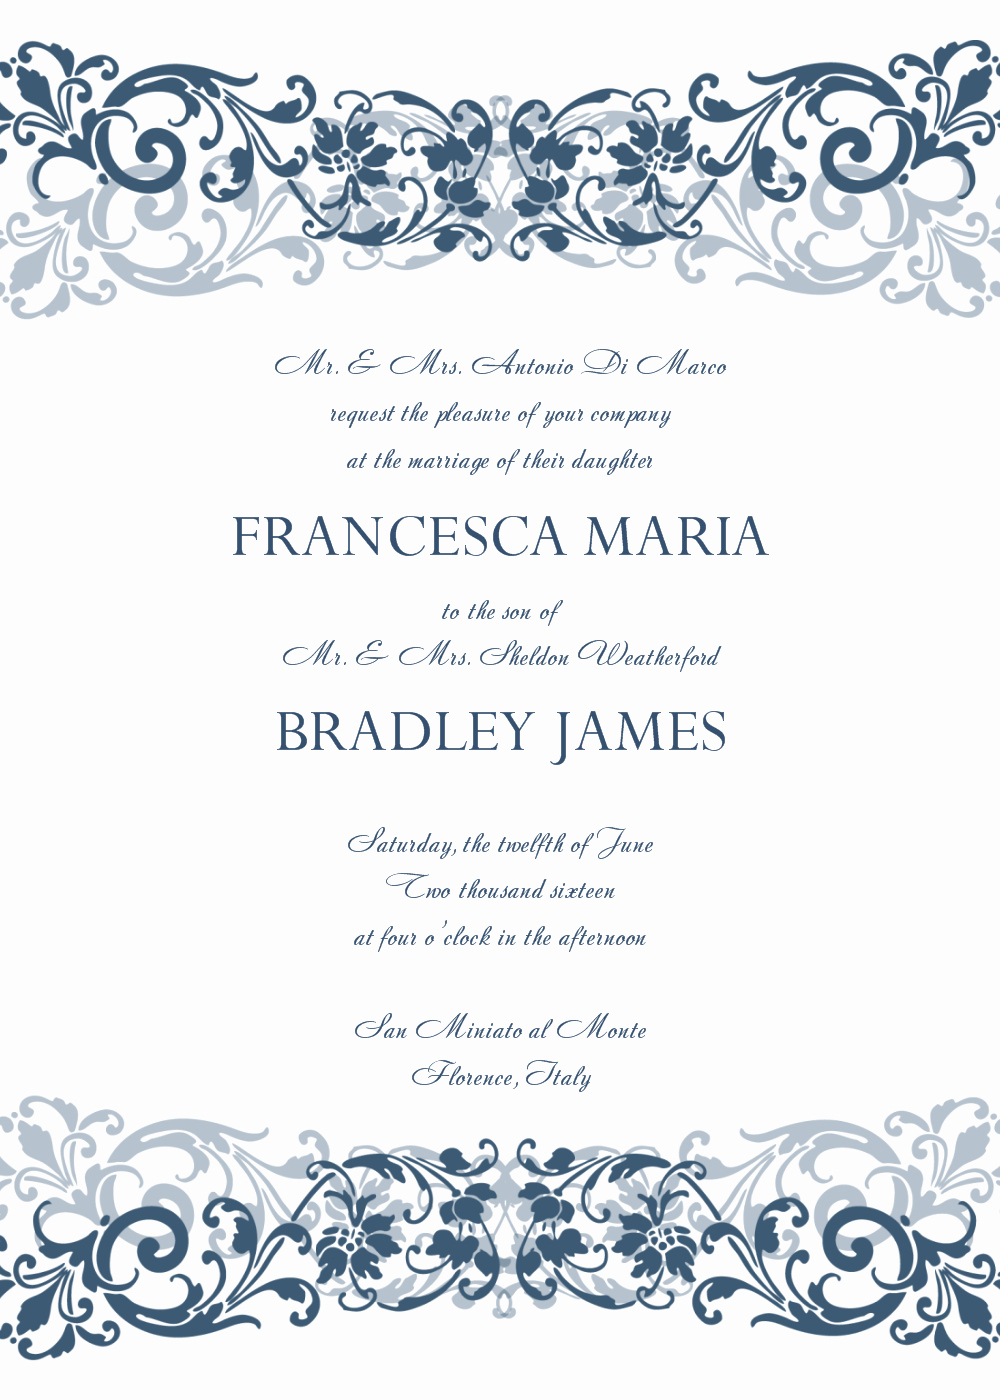 Word Party Invitation Template Luxury 8 Free Wedding Invitation Templates Excel Pdf formats